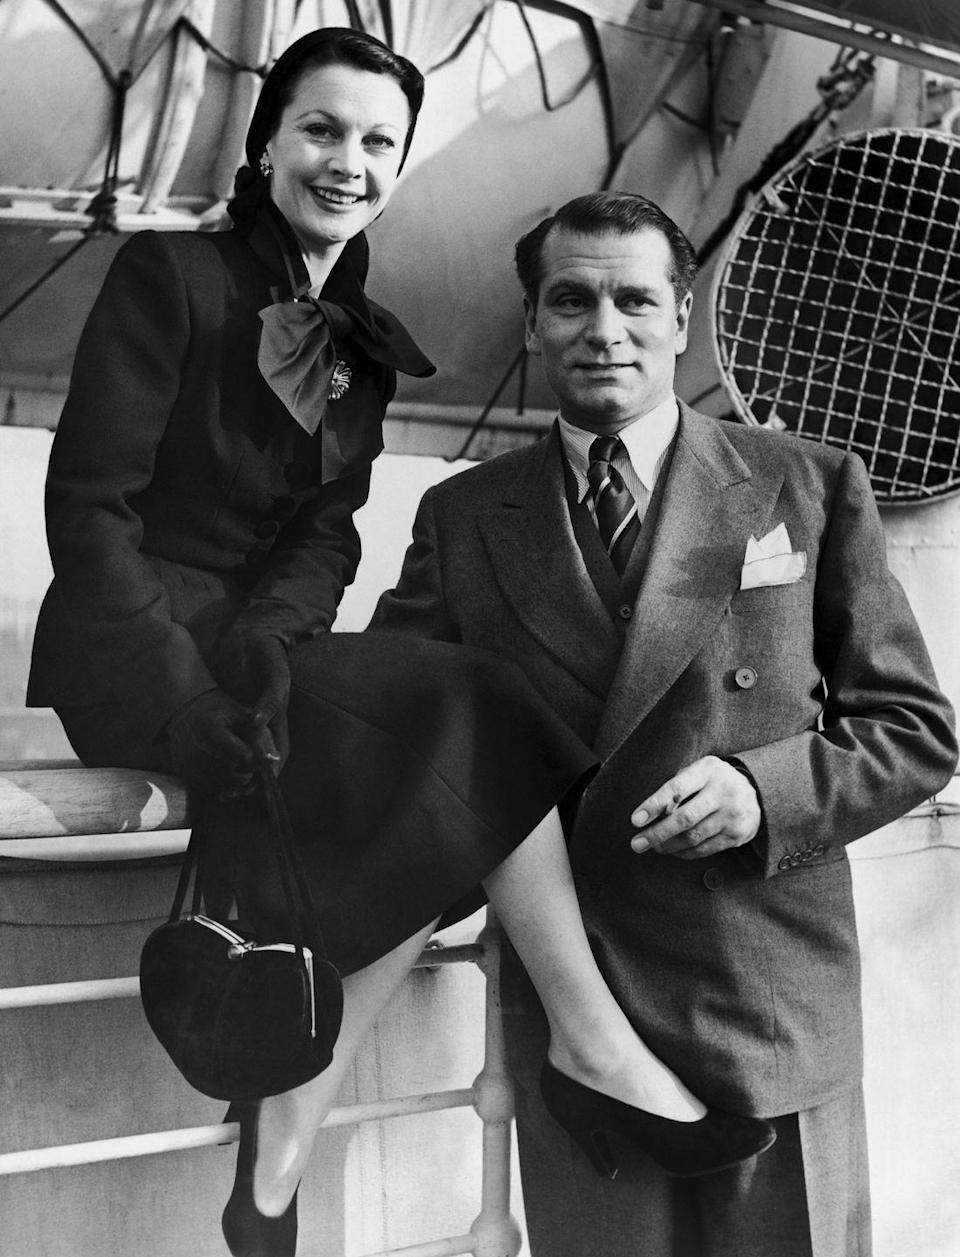 <p>Vivien Leigh dresses to impress aboard the RMS Mauretania with her husband, Laurence Olivier. The Hollywood couple sailed on the ocean liner from London to New York in 1951. </p>